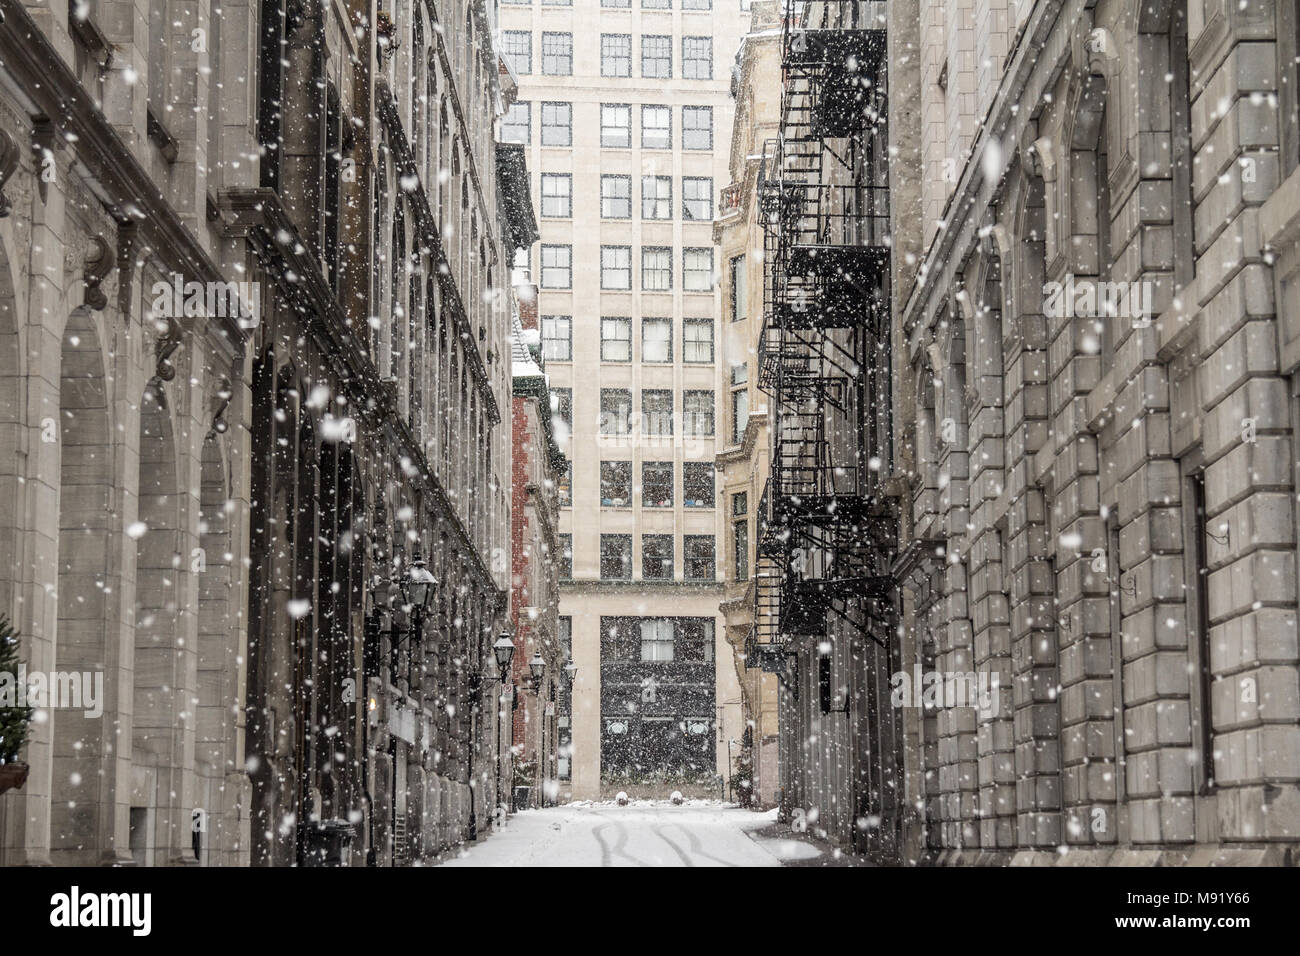 Street Alley of Old-Montreal in winter under a snow storm with a modern skyscraper in the background  Picture of a small alley street in the older par - Stock Image